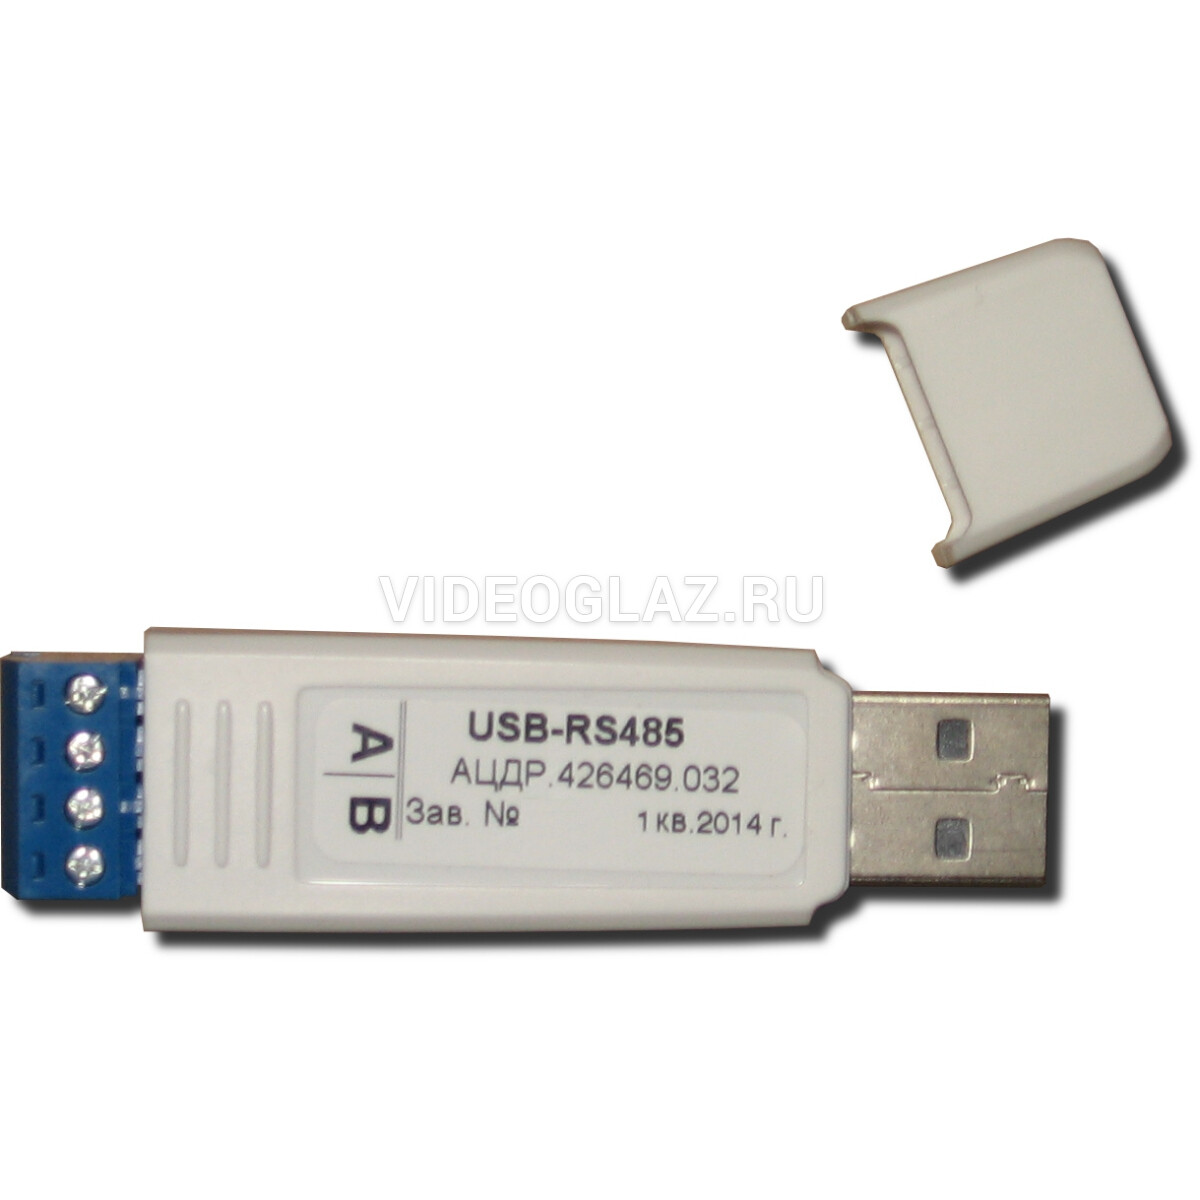 Usb to rs485 adapter black + green free shipping dealextreme.